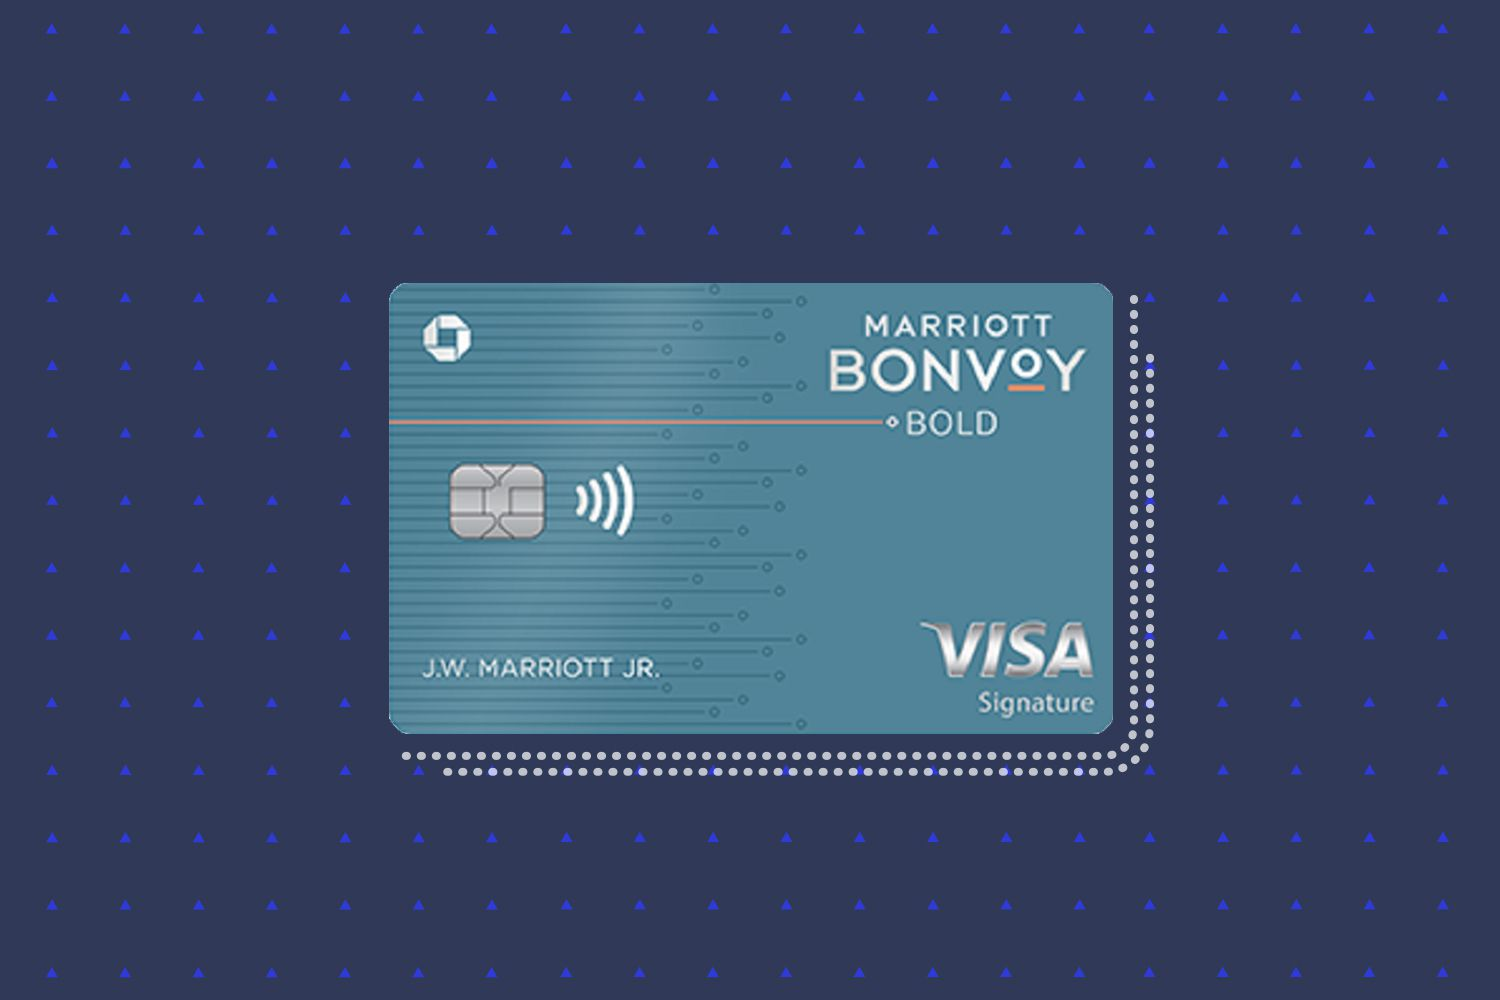 marriott bonvoy boundless credit card review. Marriott Bonvoy Bold Credit Card Review